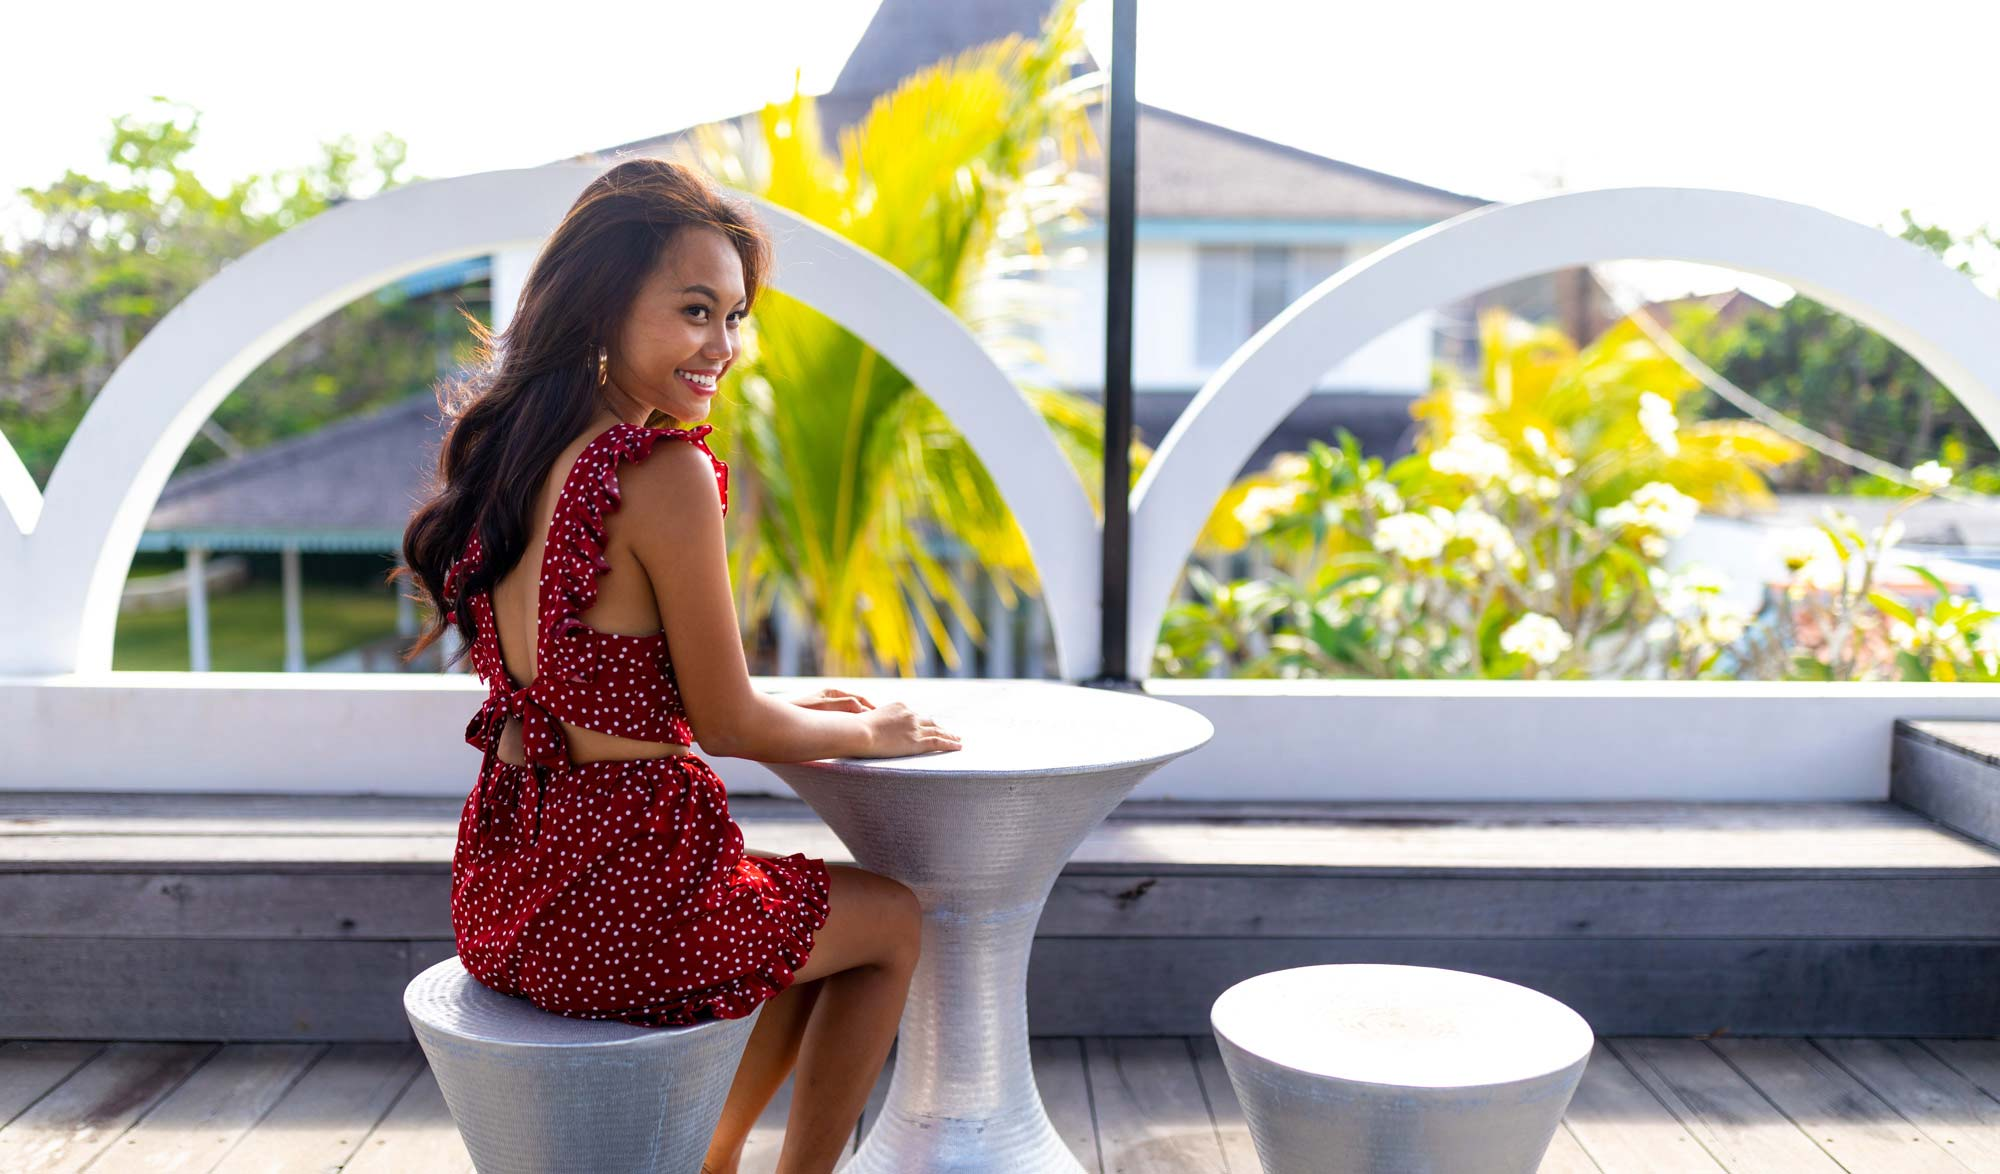 Woman sits at table at luxury villa in Bali wearing red | Lifestyle Photography | Swimwear Photography | Asian Bali Model | High Key Photography | Fashion Photography